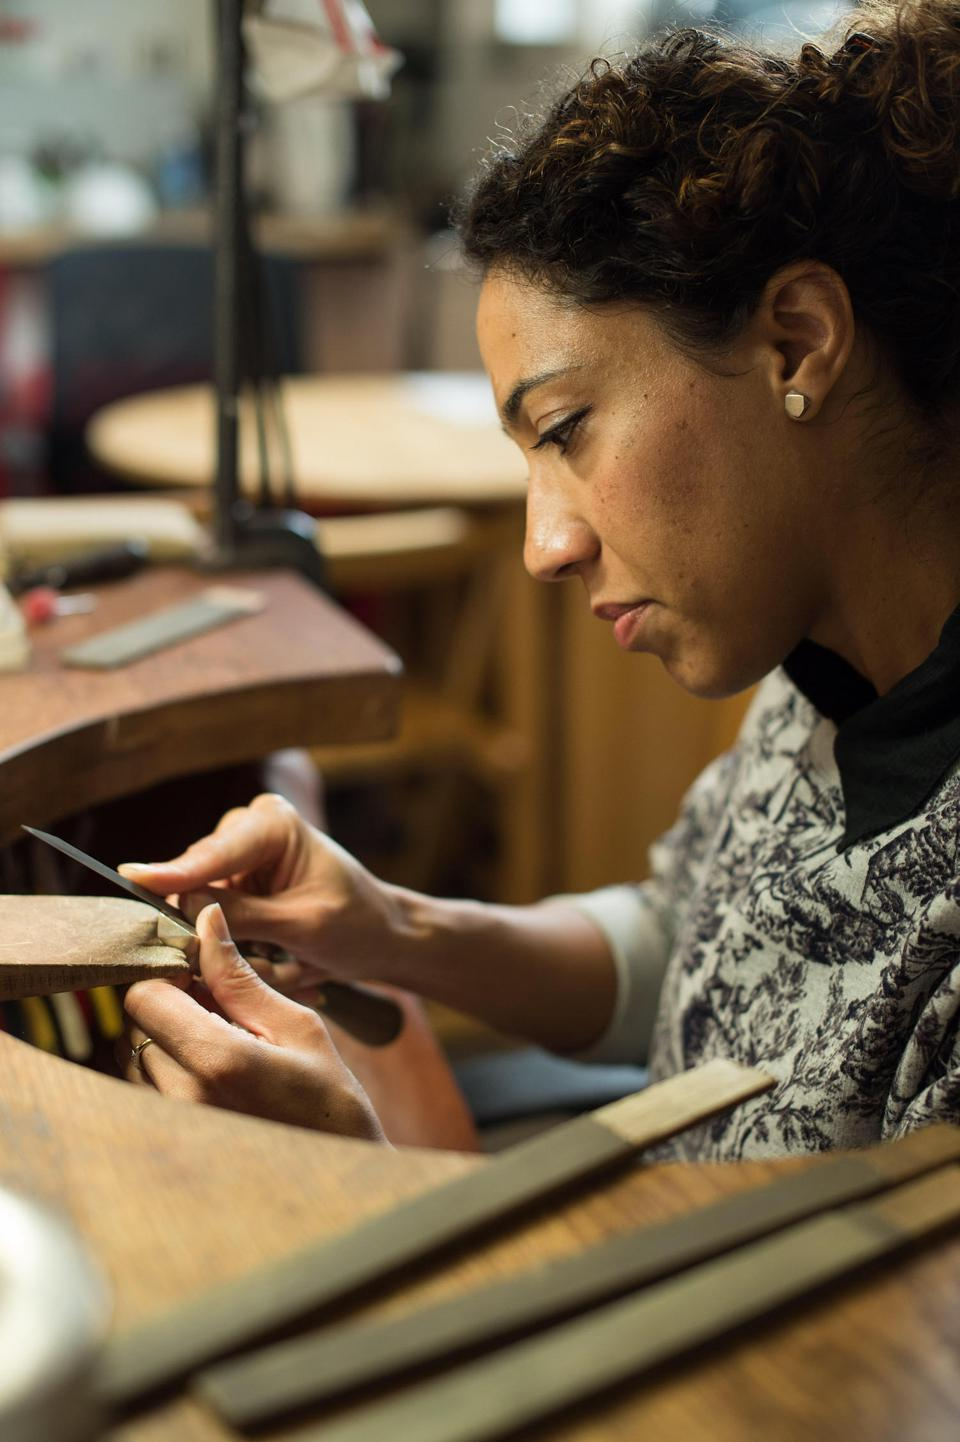 Jewelry designer Melanie Eddy working at the bench.